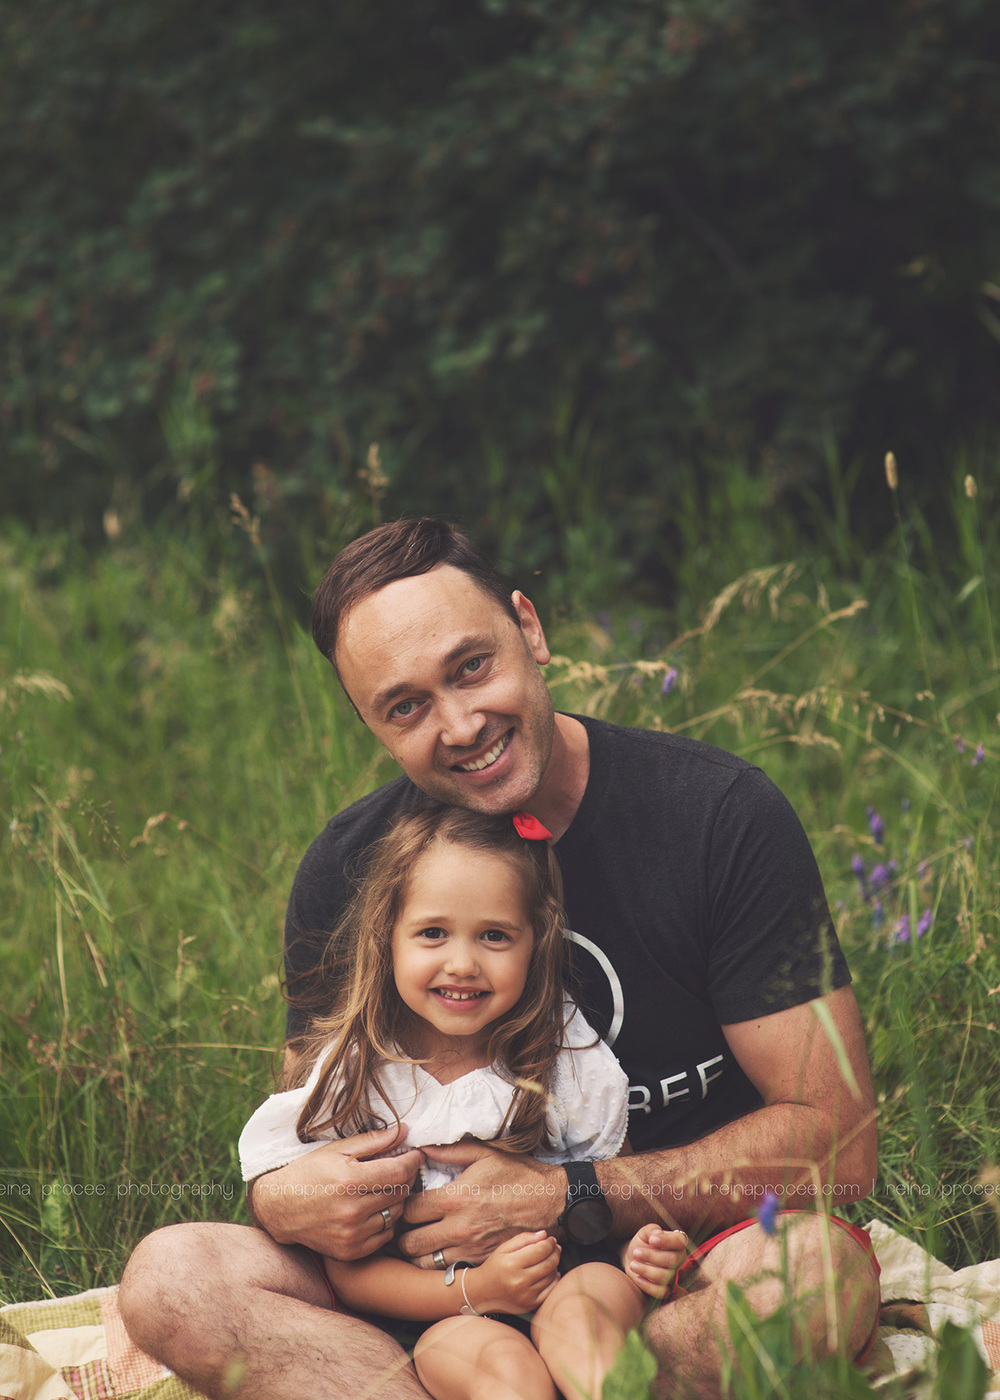 dad and daughter sitting in field smiling at camera